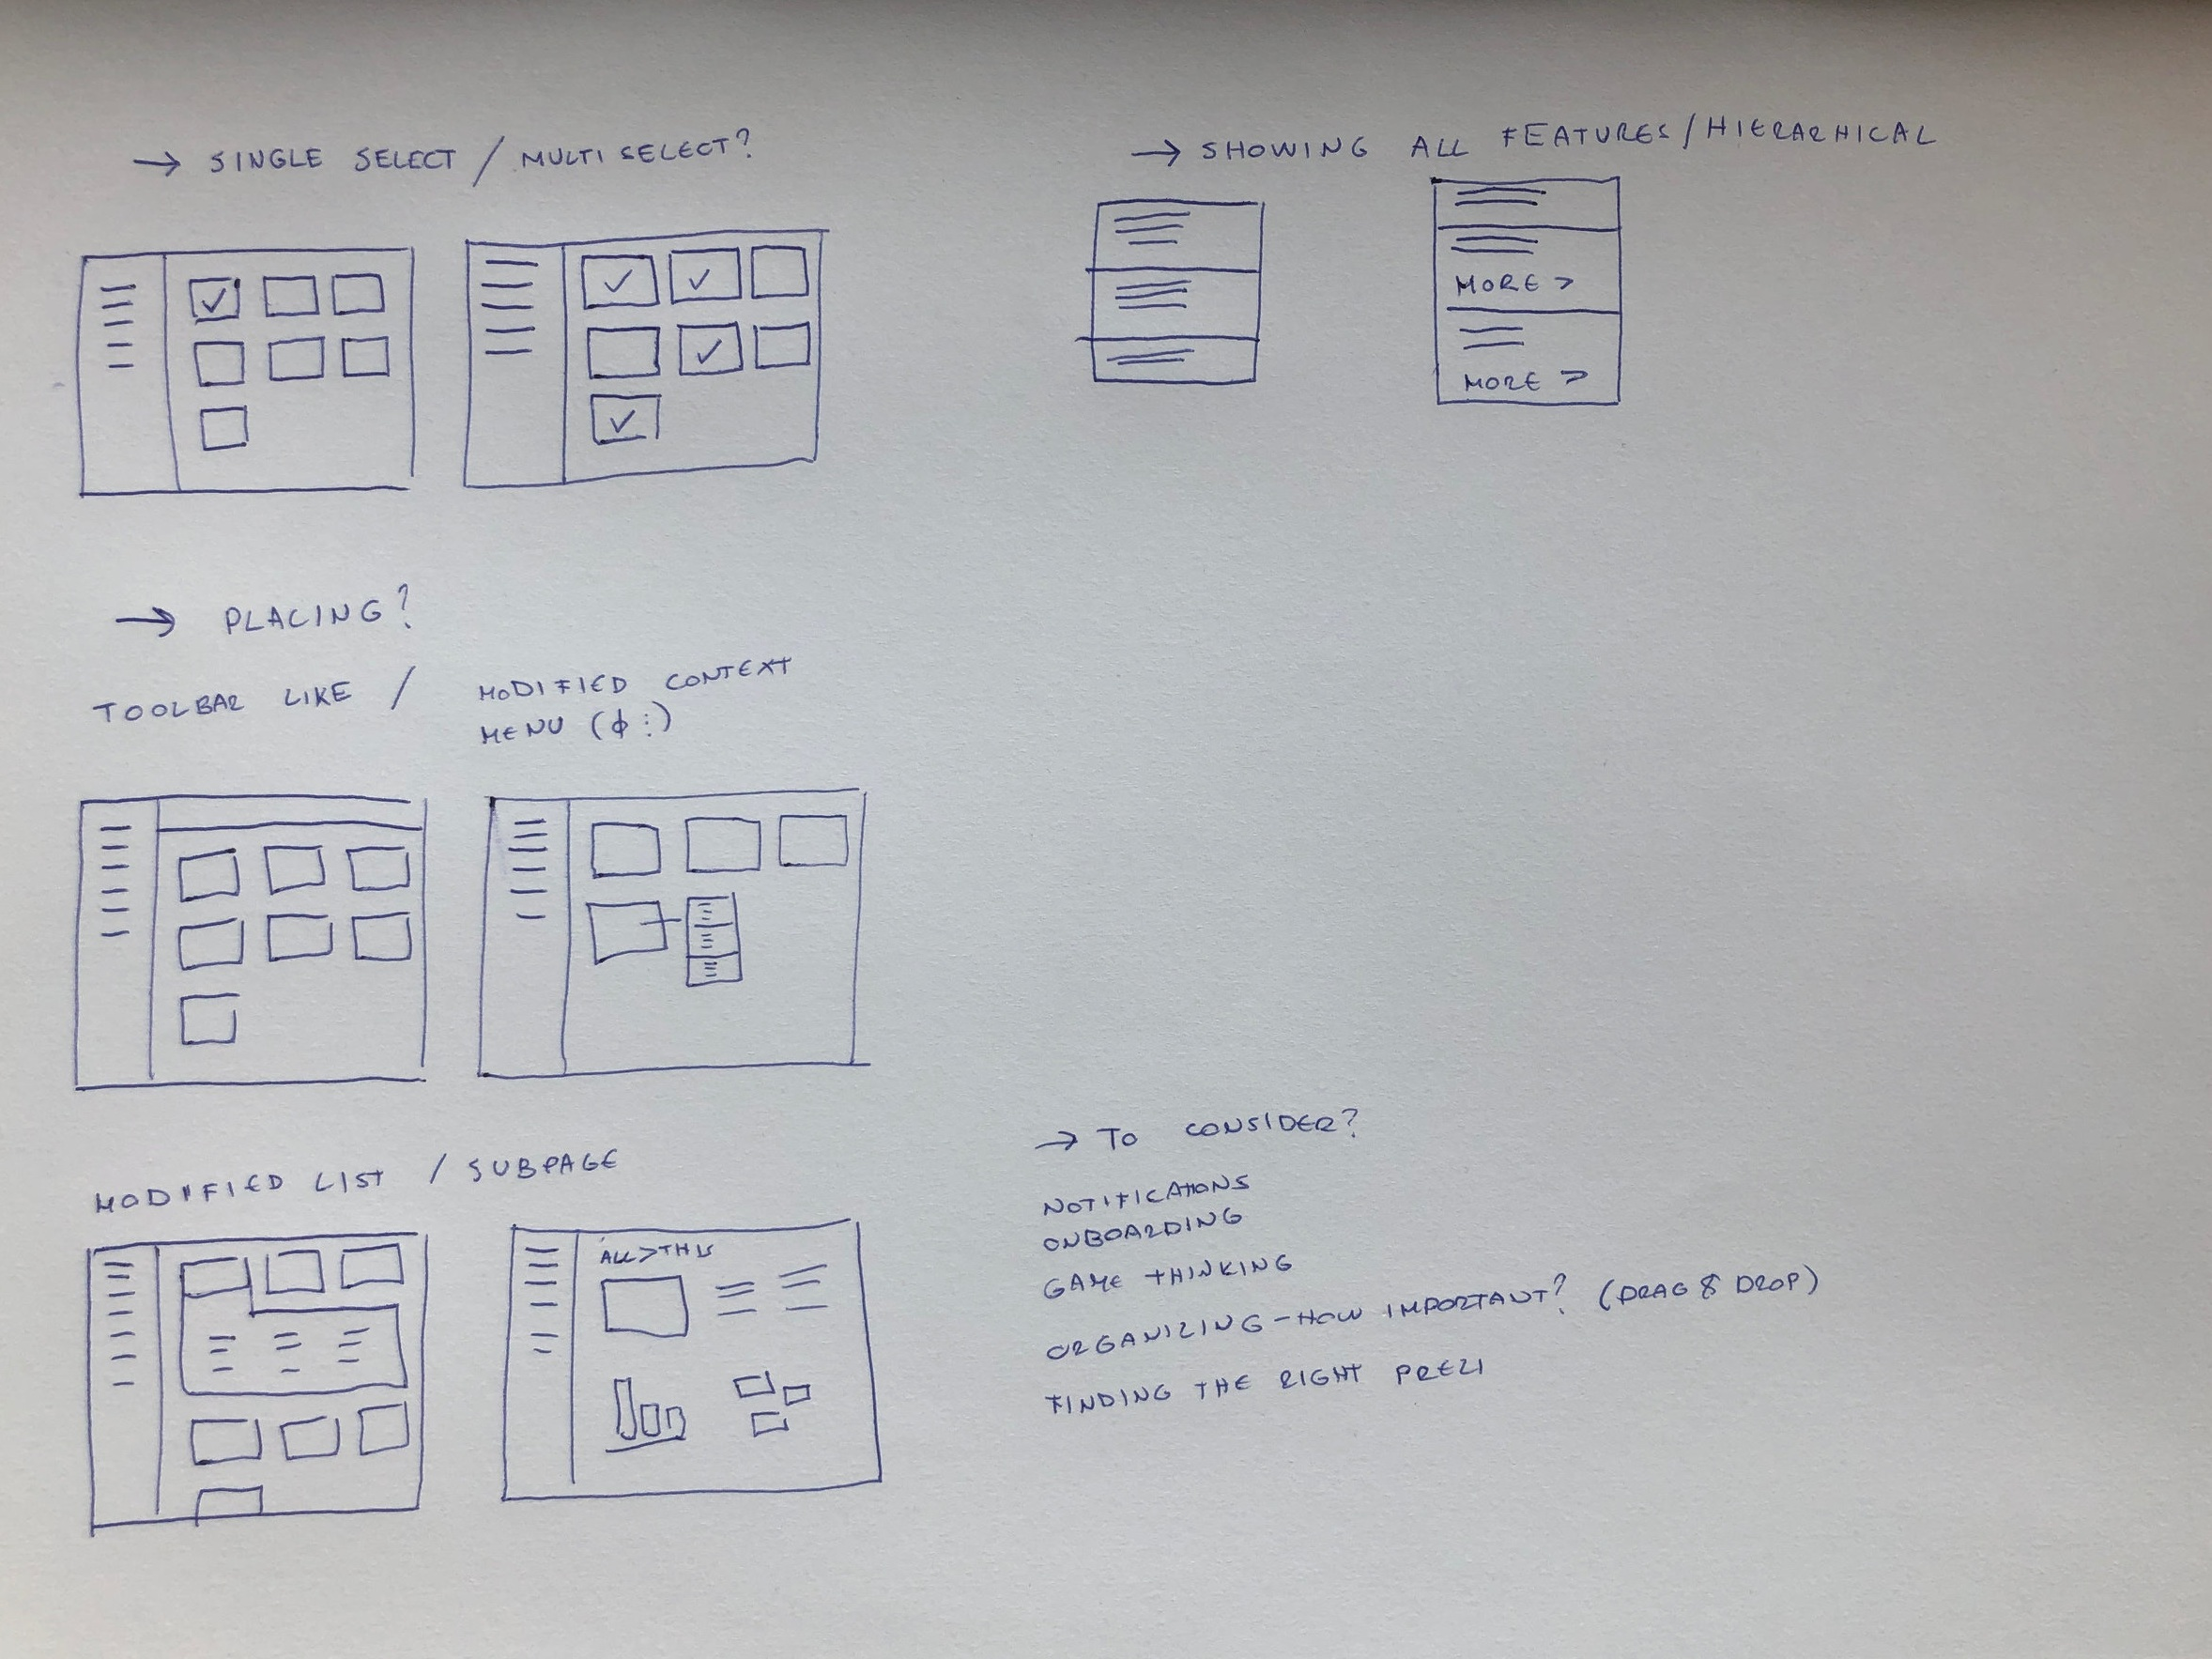 Thoughts & ideas around bringing these features to the dashboard